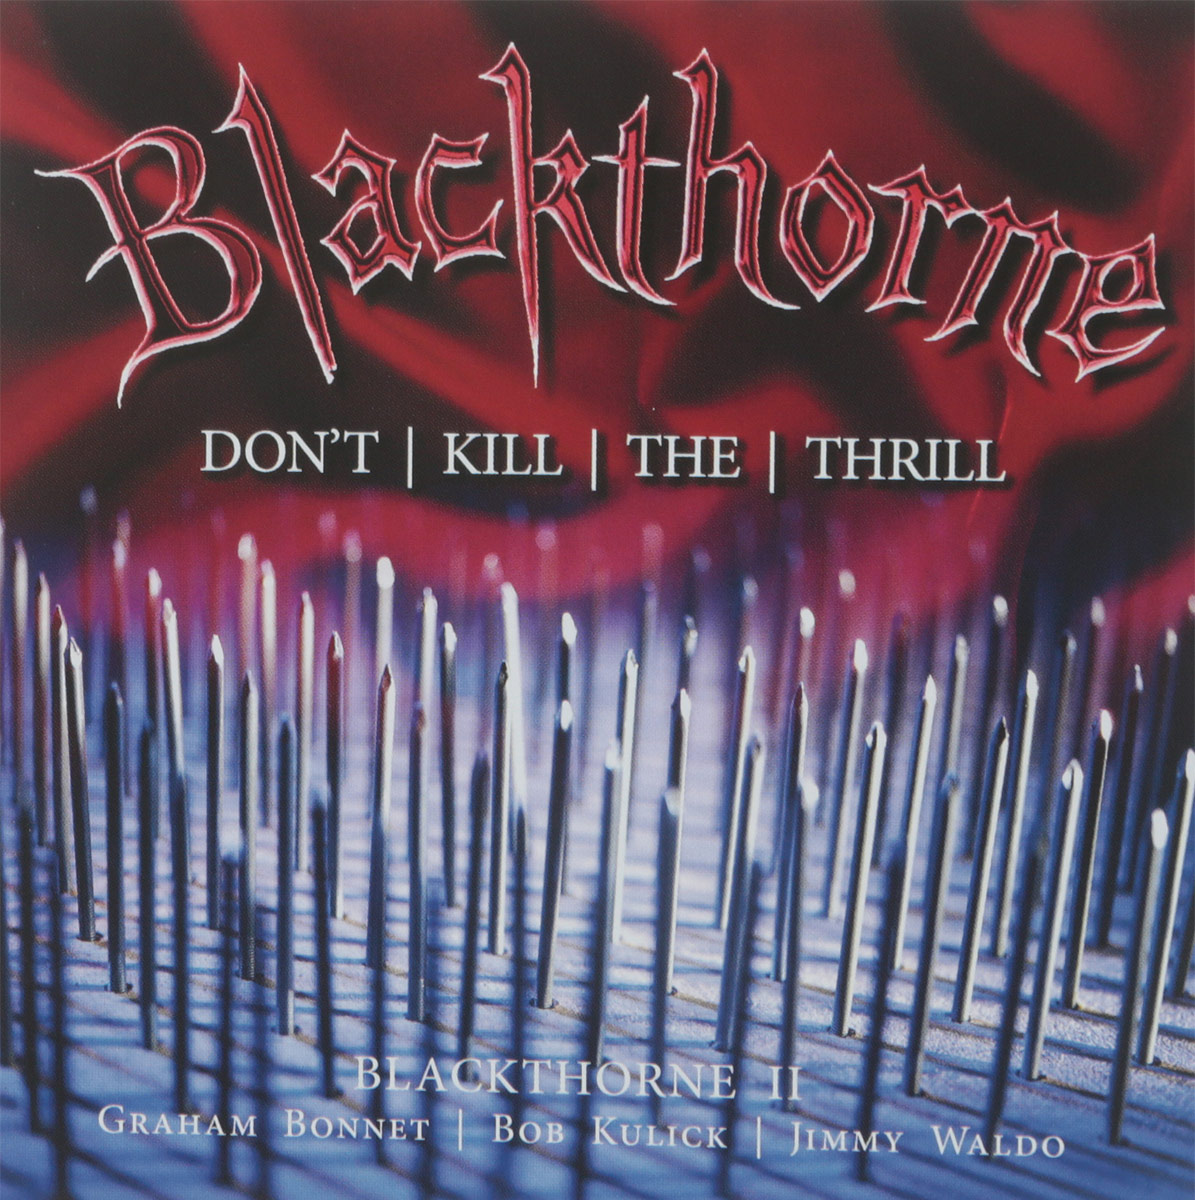 Фото - Blackthorne Blackthorne. Blackthorne II: Don't Kill The Thrill: Previously Unreleased (2 CD) cd led zeppelin ii deluxe edition